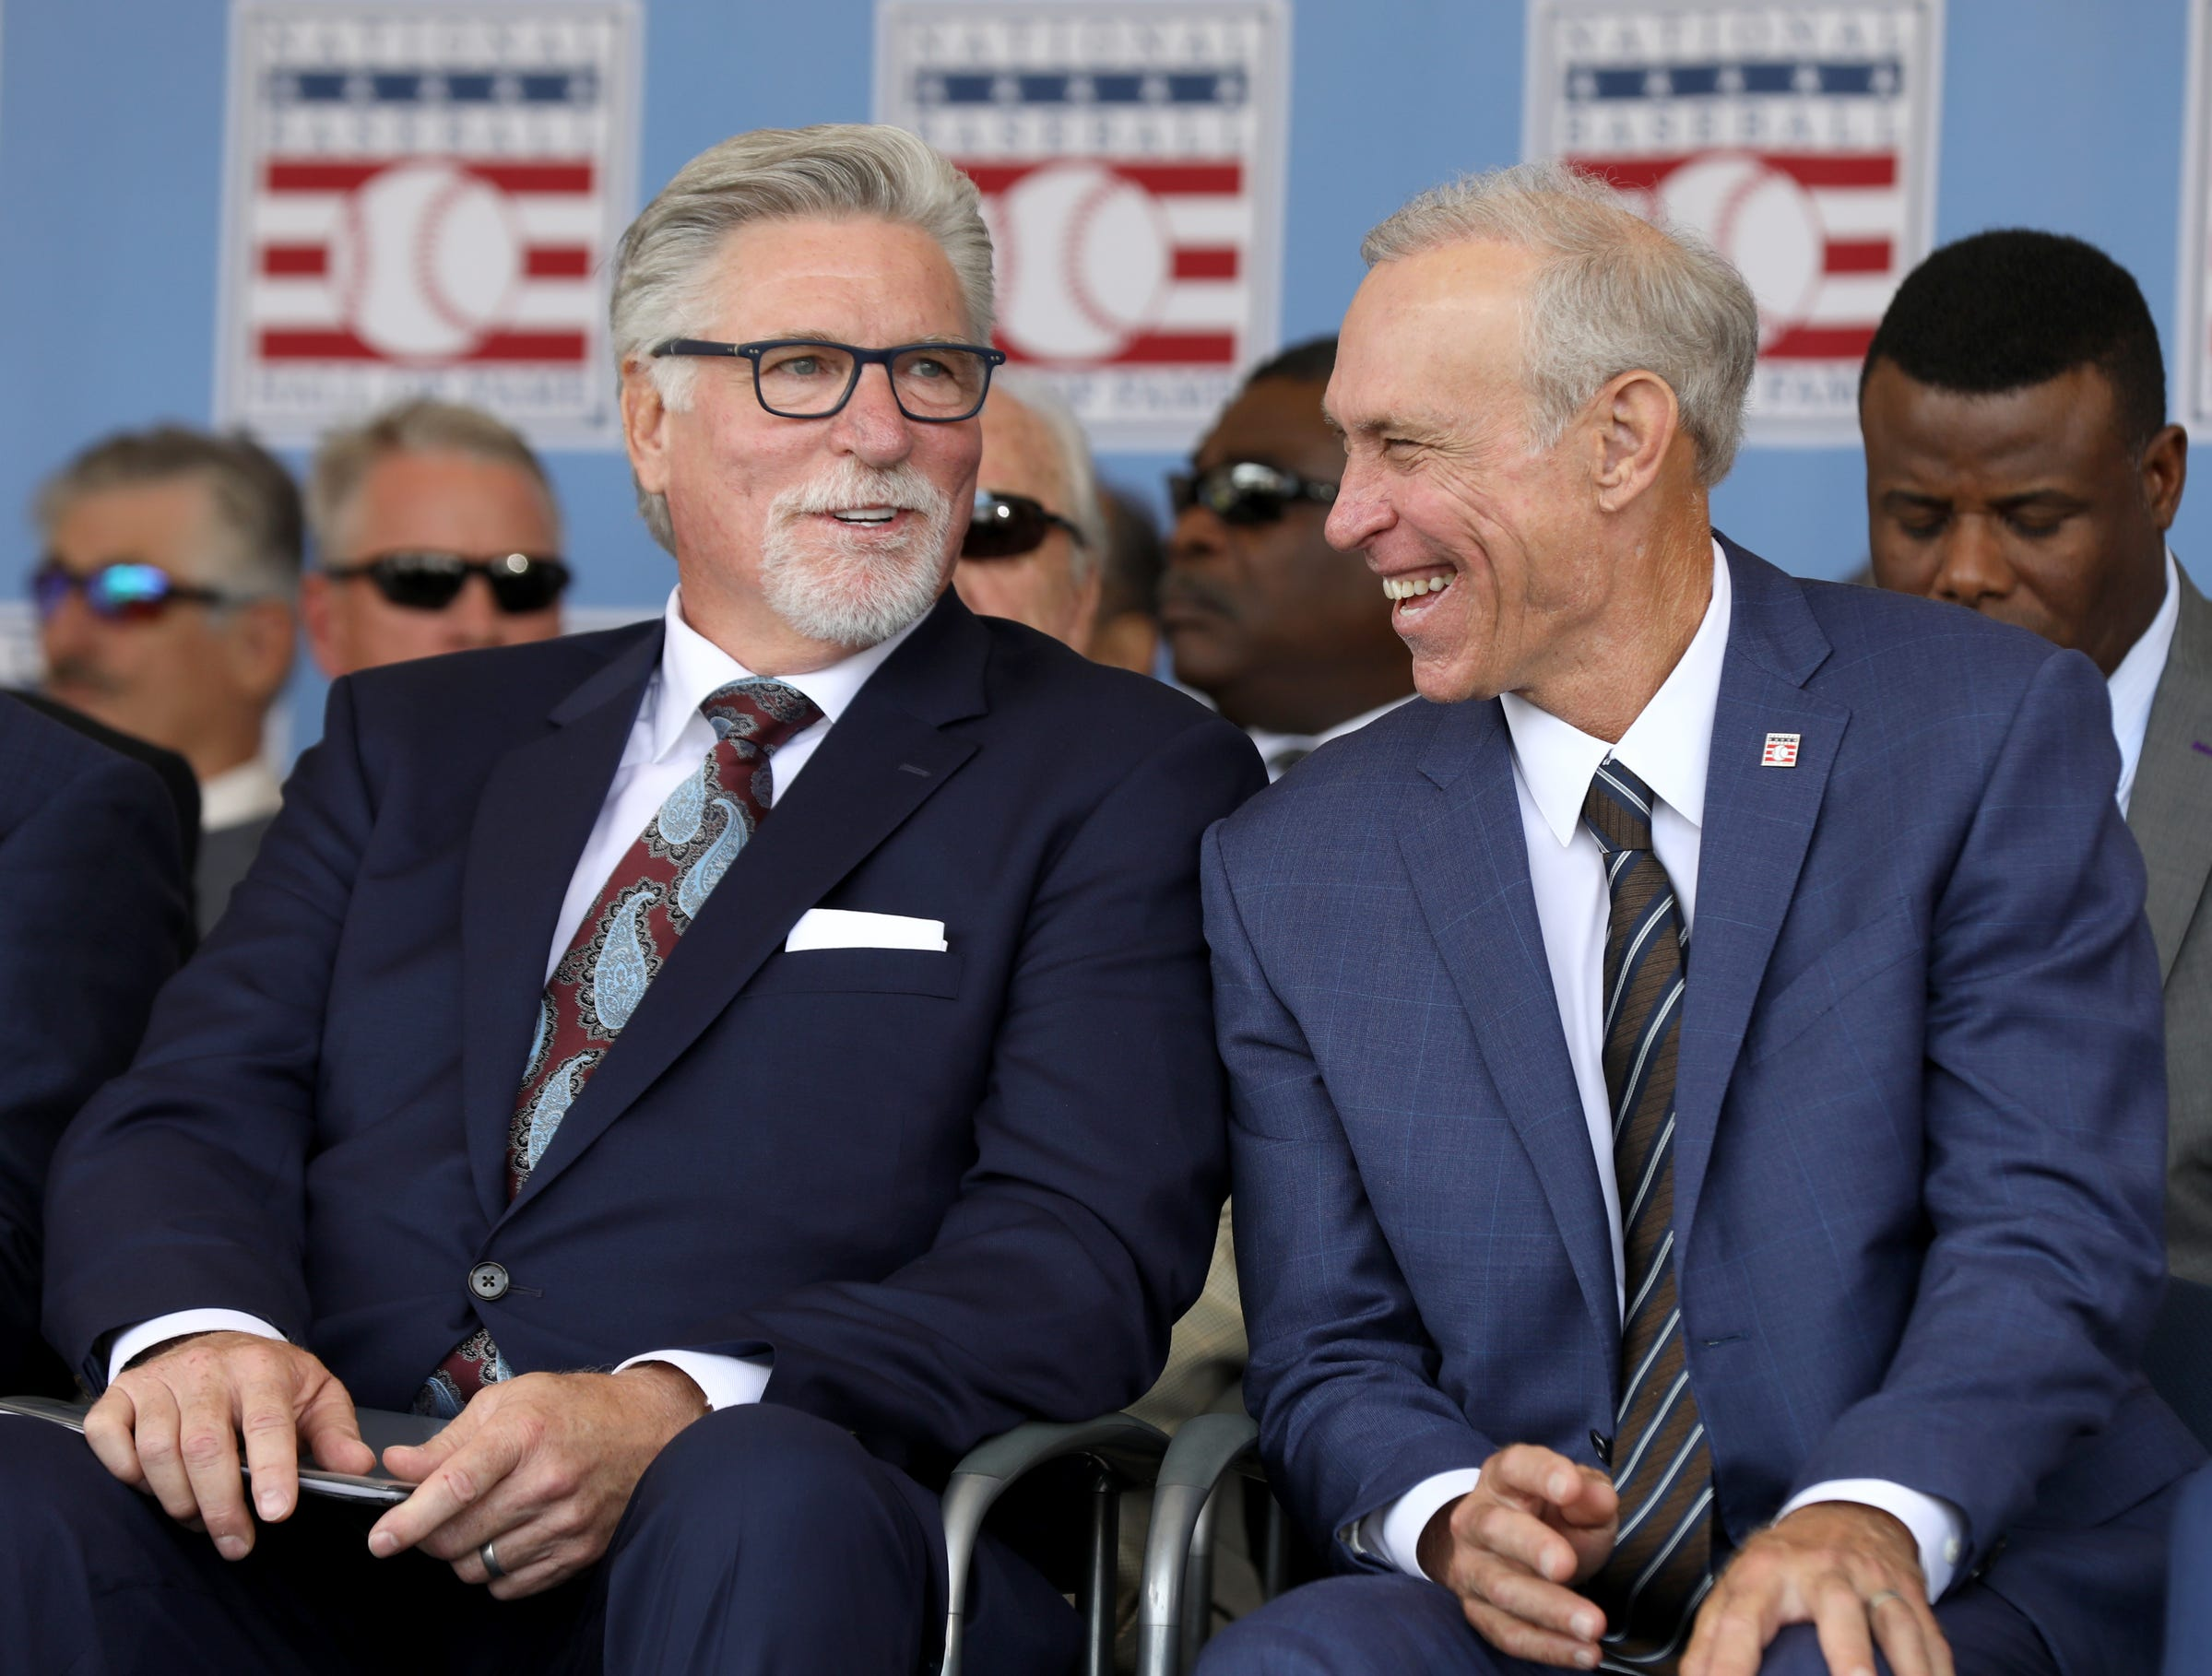 Tigers greats Jack Morris and Alan Trammell share a laugh on stage at the Clark Sports Center during the National Baseball Hall of Fame induction ceremony in Cooperstown, N.Y., on Sunday, July 29, 2018.